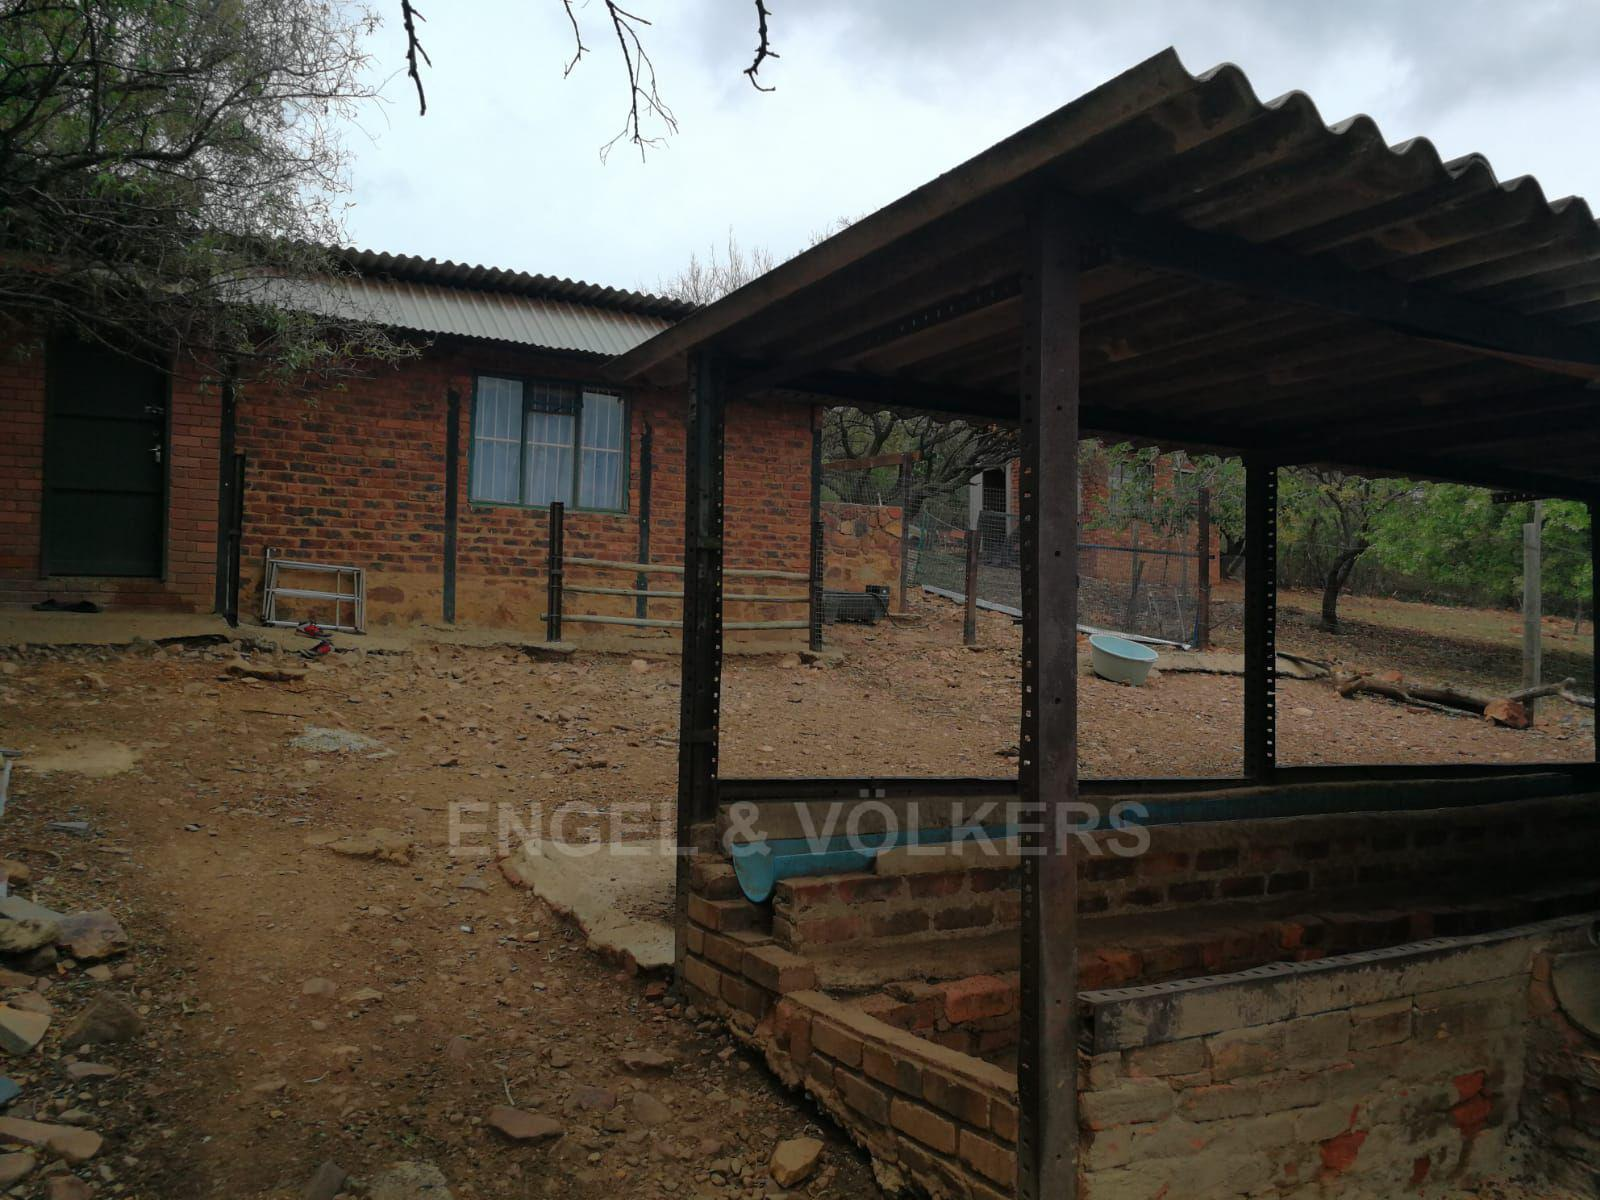 Land in Hartbeespoort Dam Area - Workers quarters